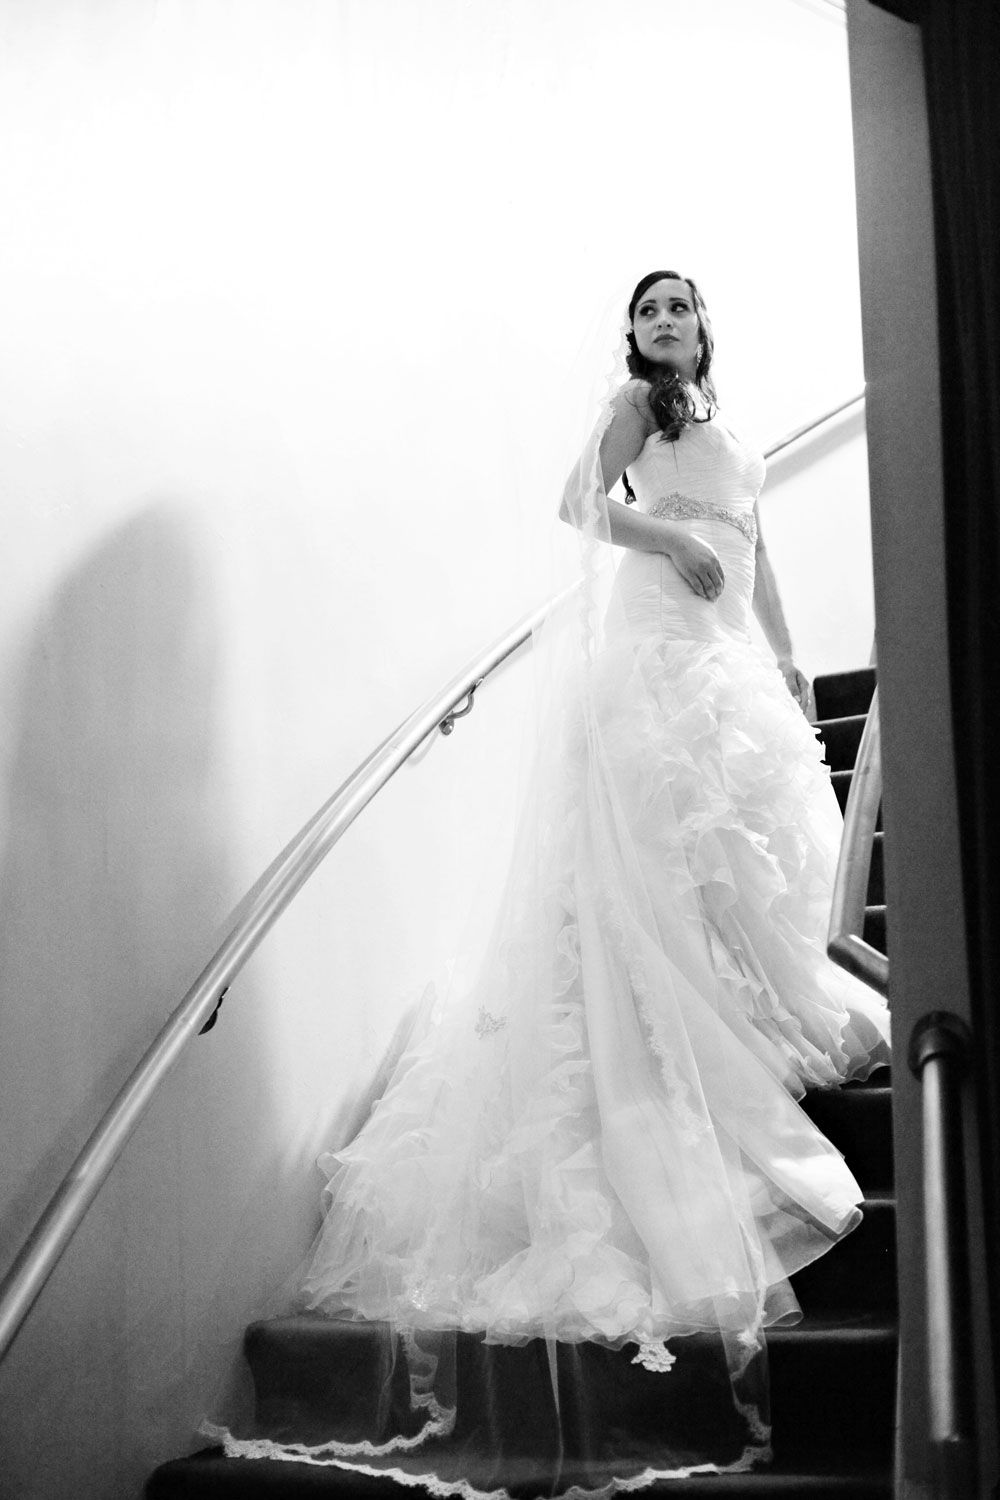 Wedding dresses with ruffles on skirt  Anne Barge wedding dress with ruffled skirt  Alta Moda Bridal